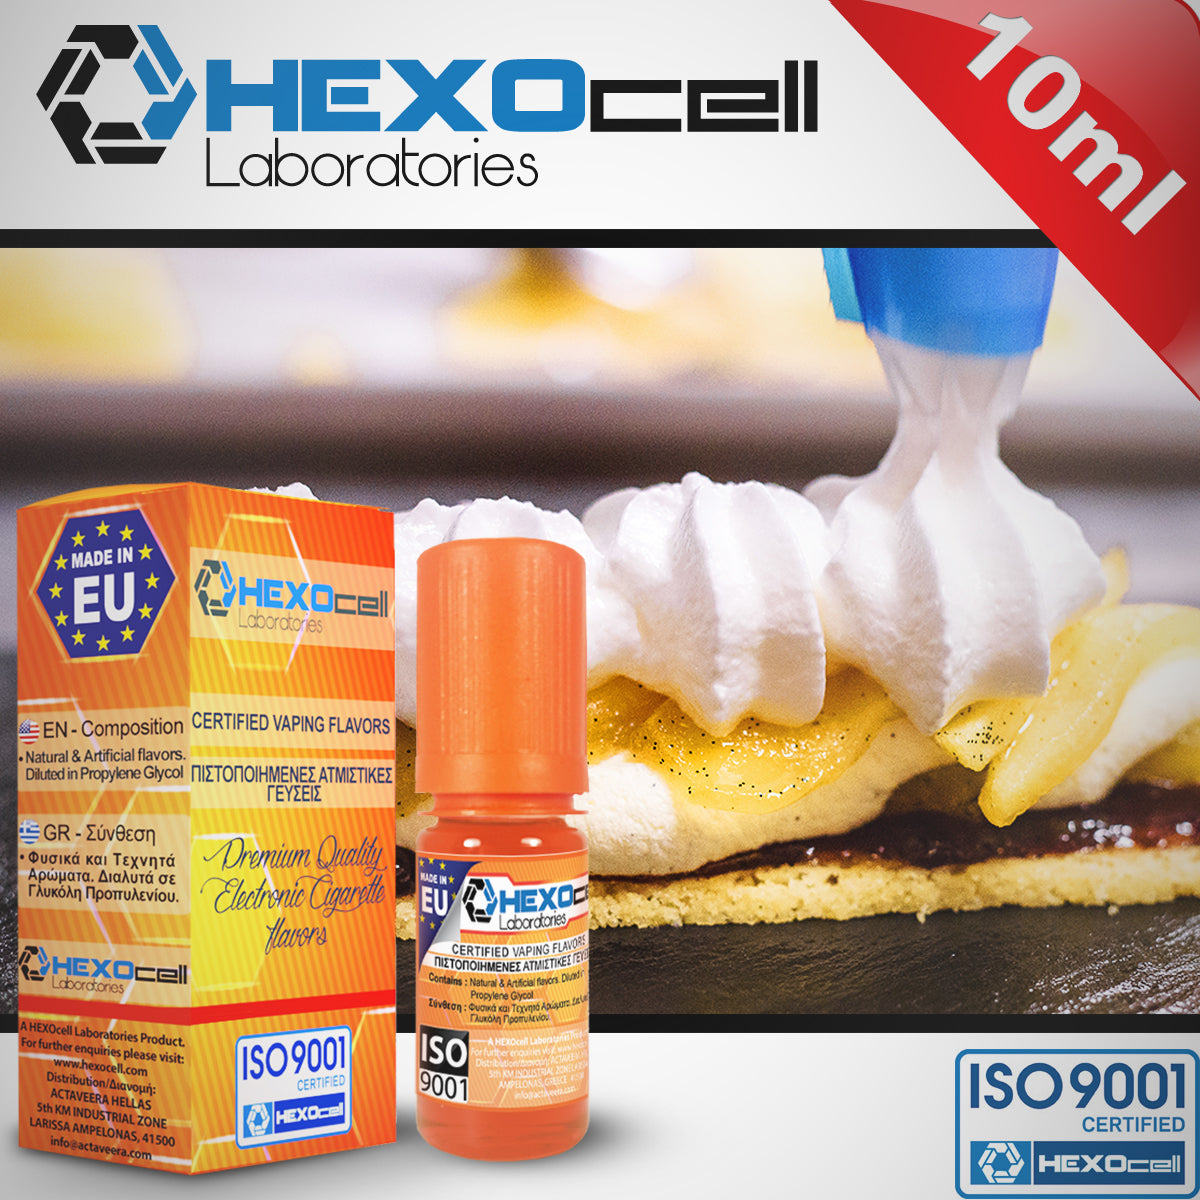 HEXOCELL - 10ML MANI PULITE (ΤΑΡΤΑ ΜΕ ΜΗΛΑ ΚΑΙ ΜΑΡΕΓΚΑ) ΣΥΜΠΥΚΝΩΜΕΝΟ ΑΡΩΜΑ